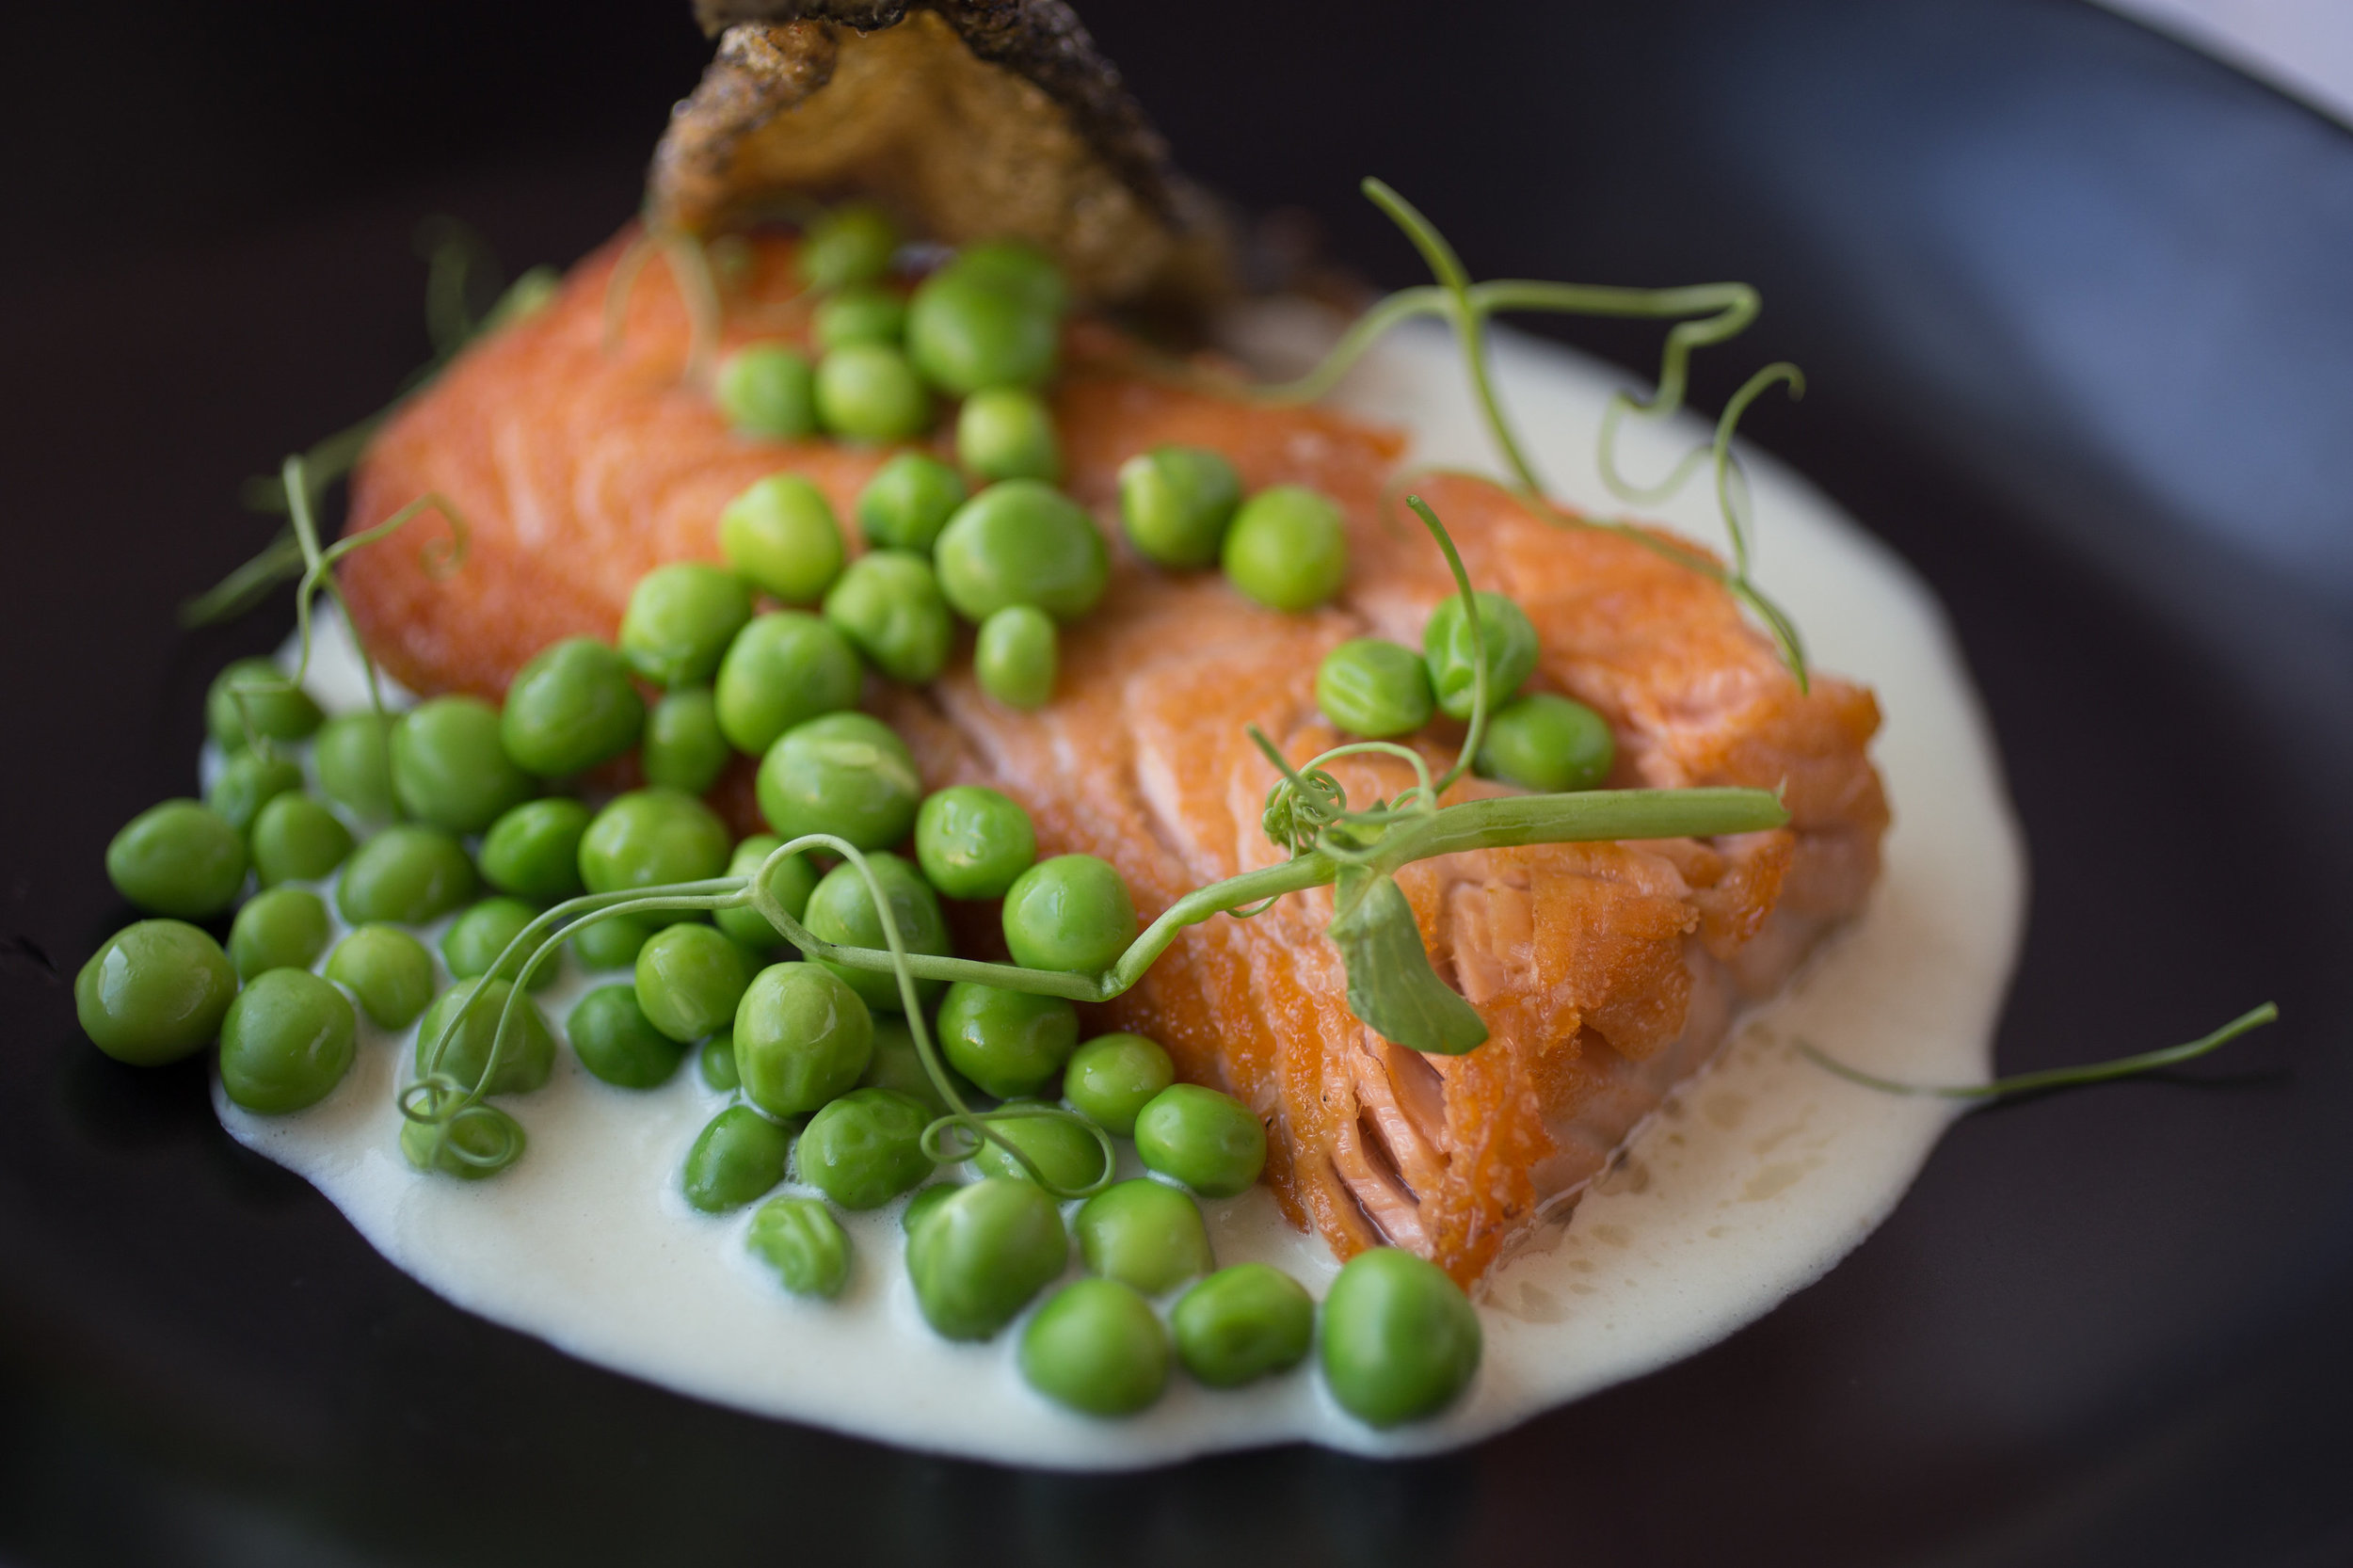 Chef Orlando Amaro  presents Seared Salmon (english peas, peas shoots, soubise sauce, salmon crackling). 📸  @ebradyrobinson  /  @bmoreculinary